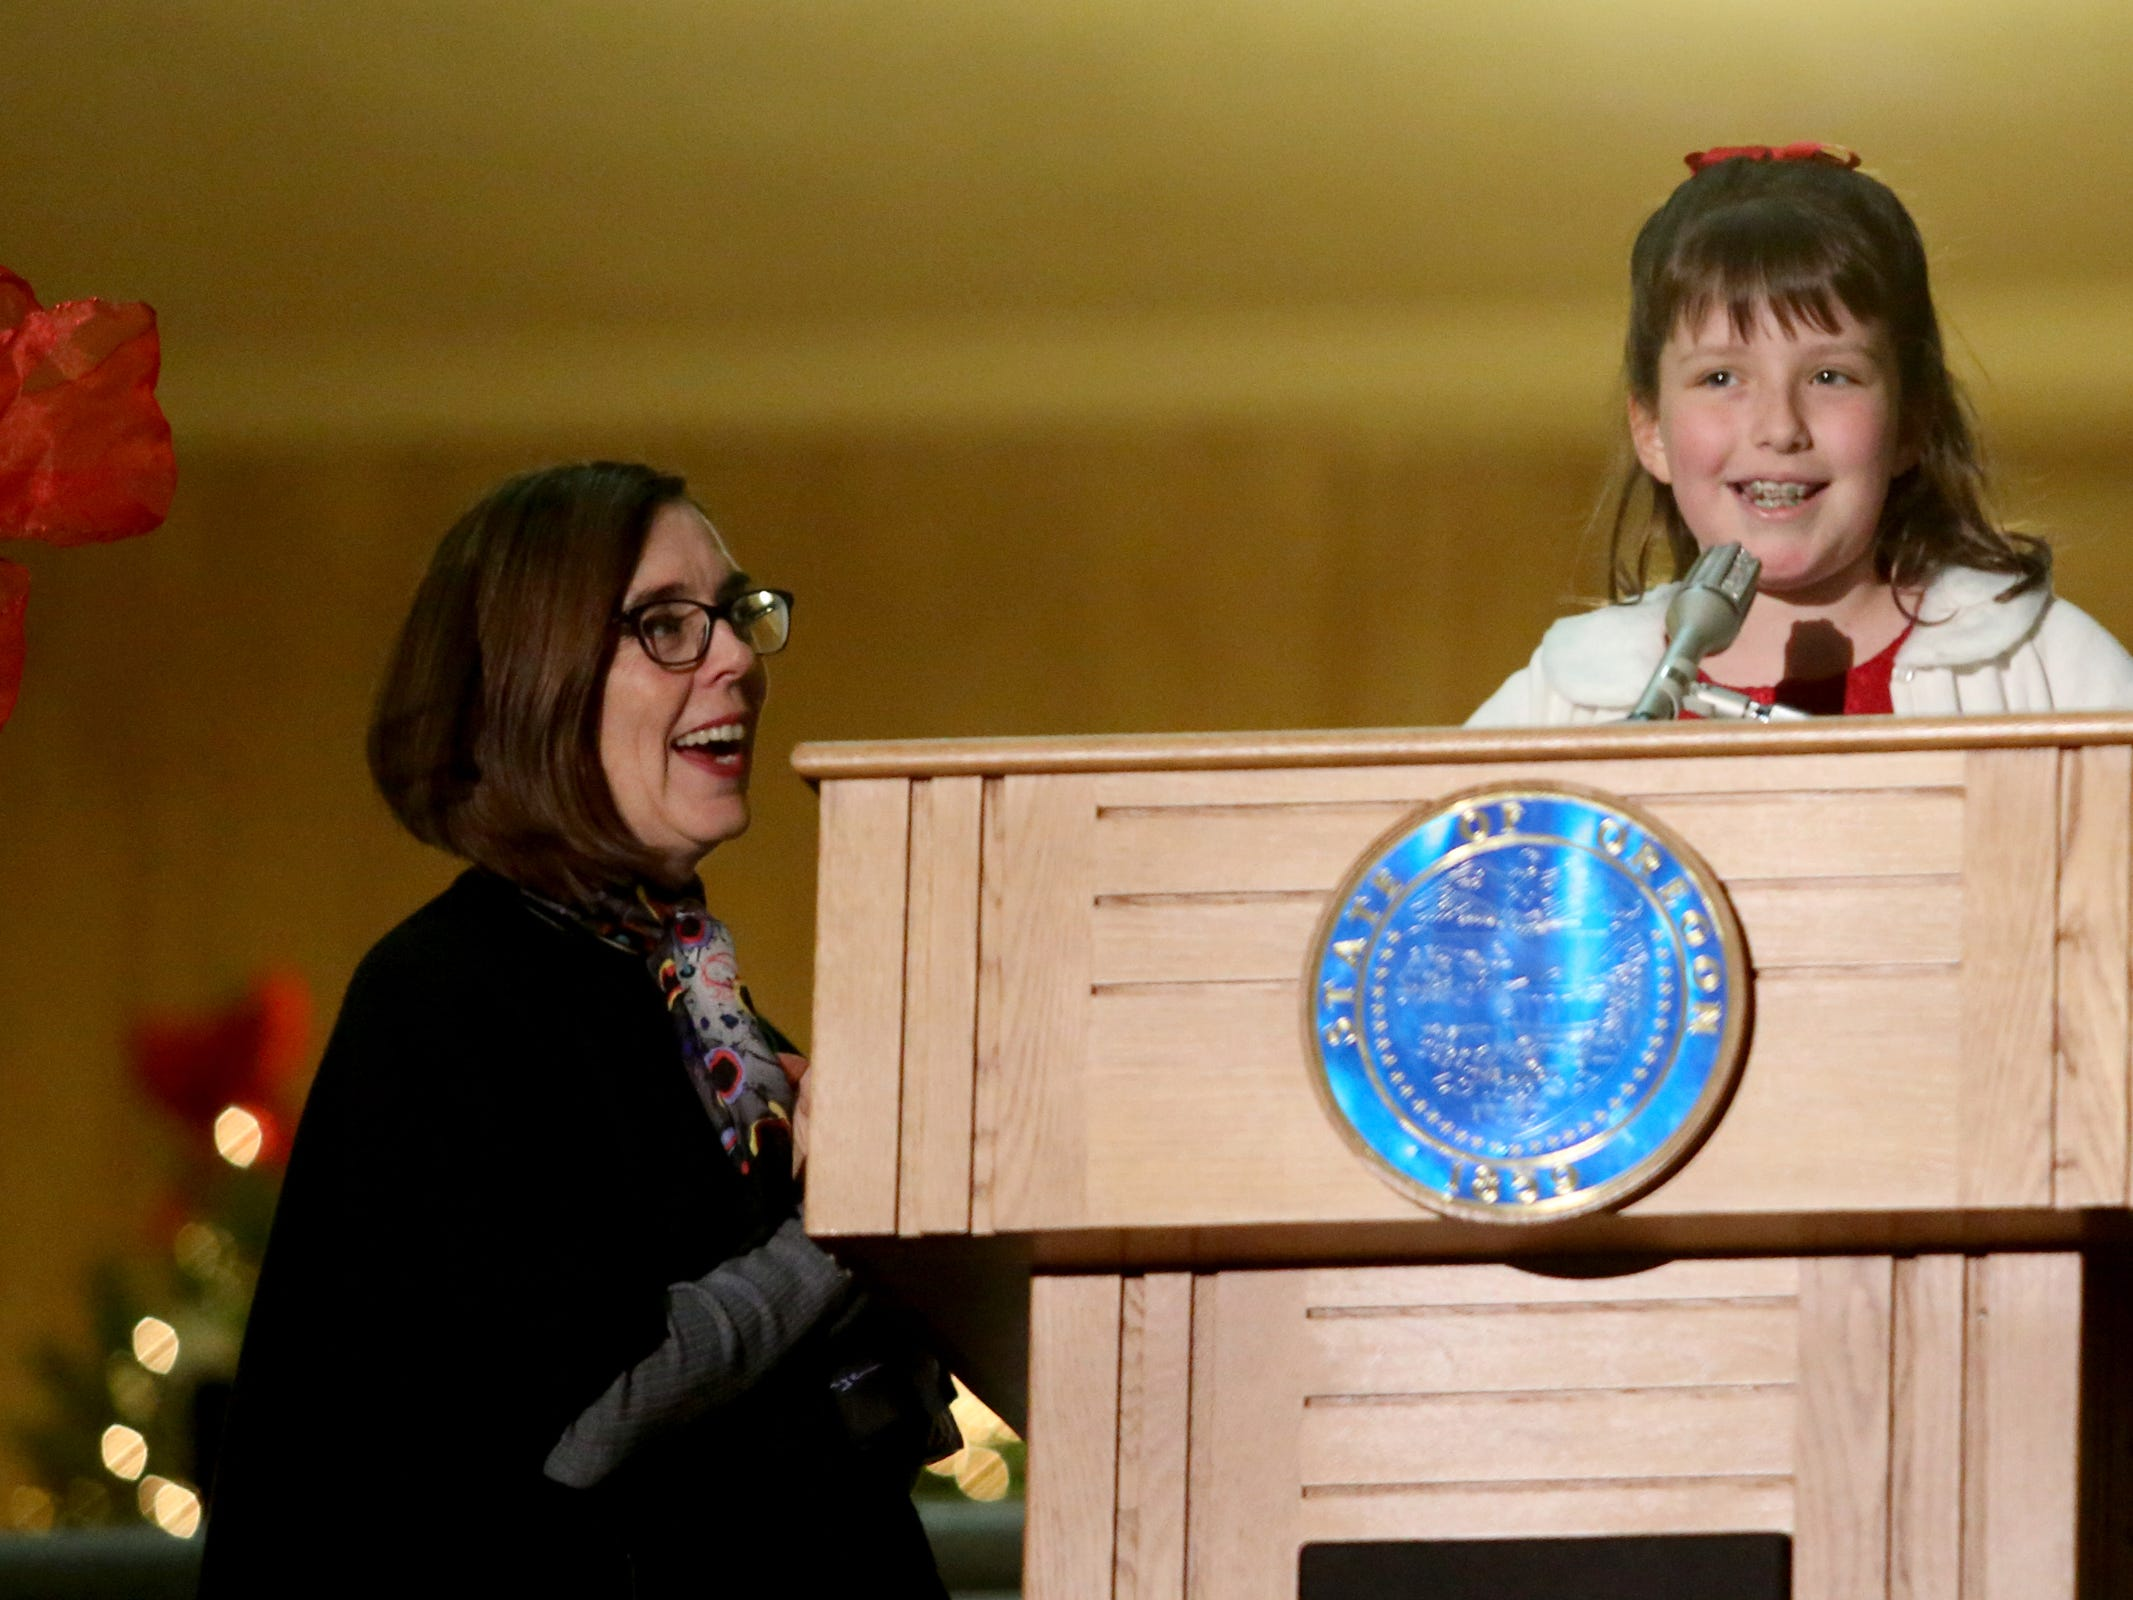 Brigette Harrington, the essay contest winner for the U.S. Capitol Christmas Tree Lighting Ceremony, speaks with Gov. Kate Brown during the Holiday Tree Lighting Celebration at the Oregon State Capitol in Salem on Tuesday, Nov. 27, 2018.